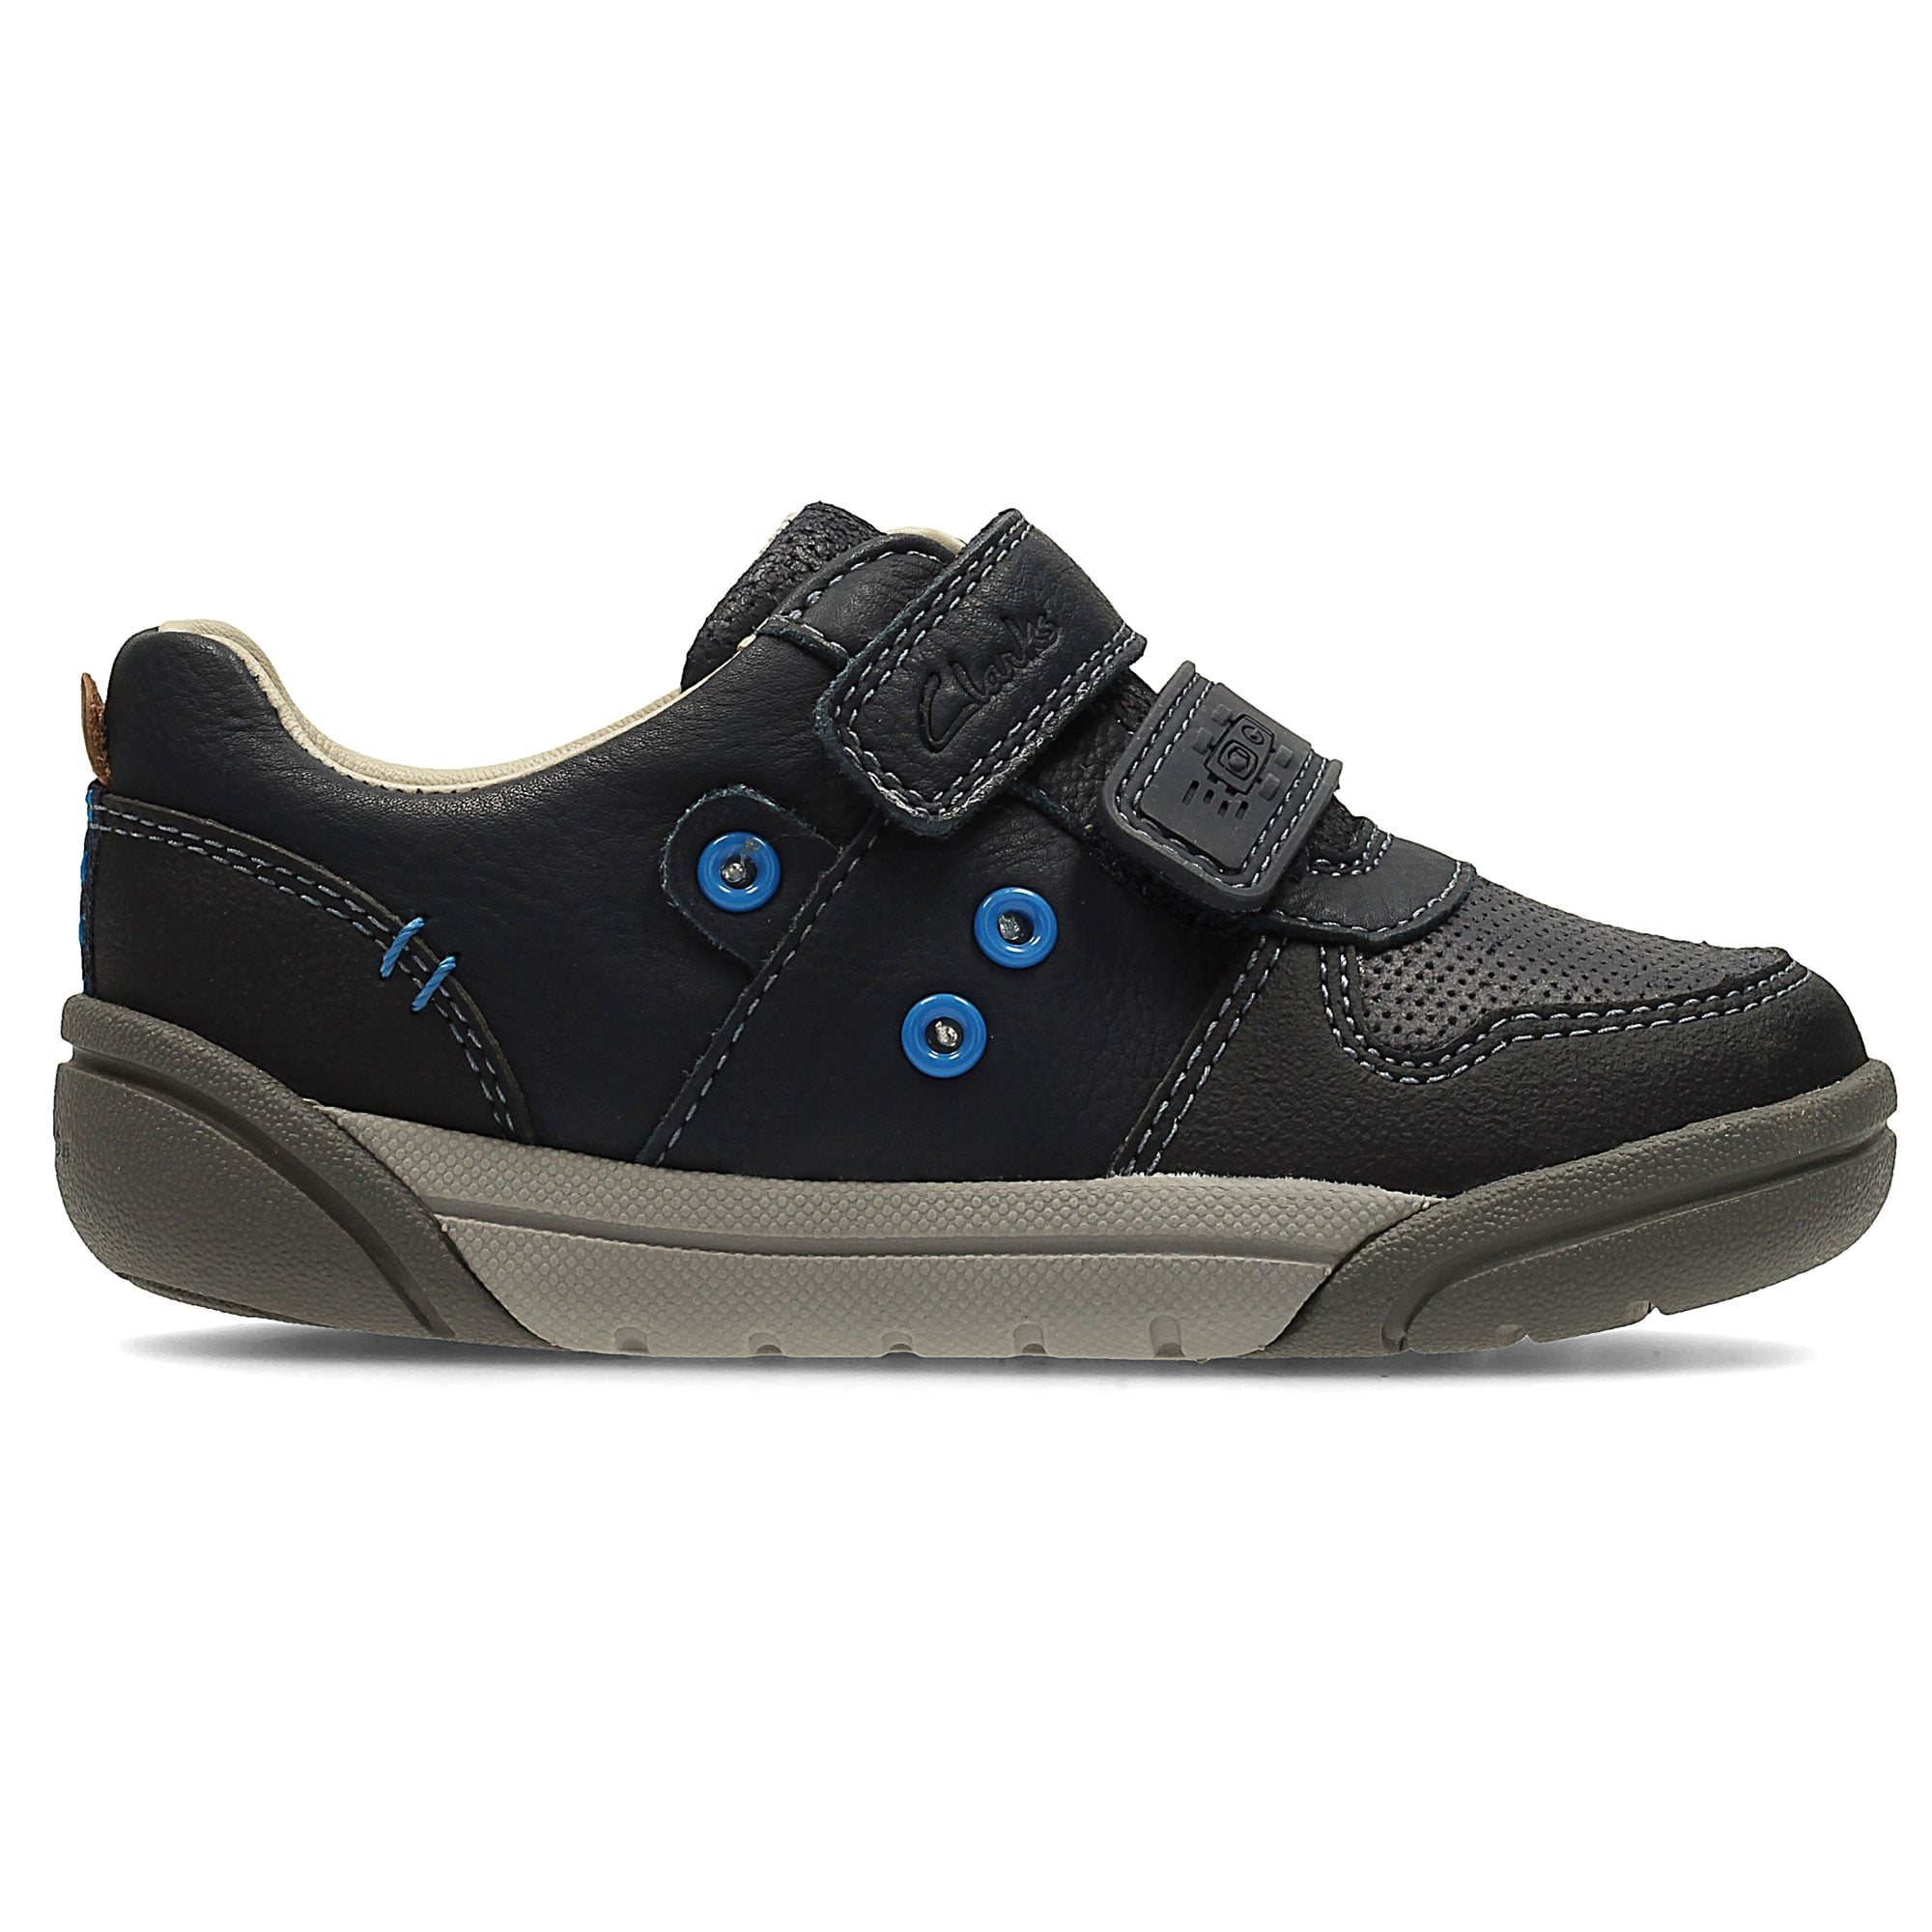 Boys Clarks Casual Shoes Tolby Buzz